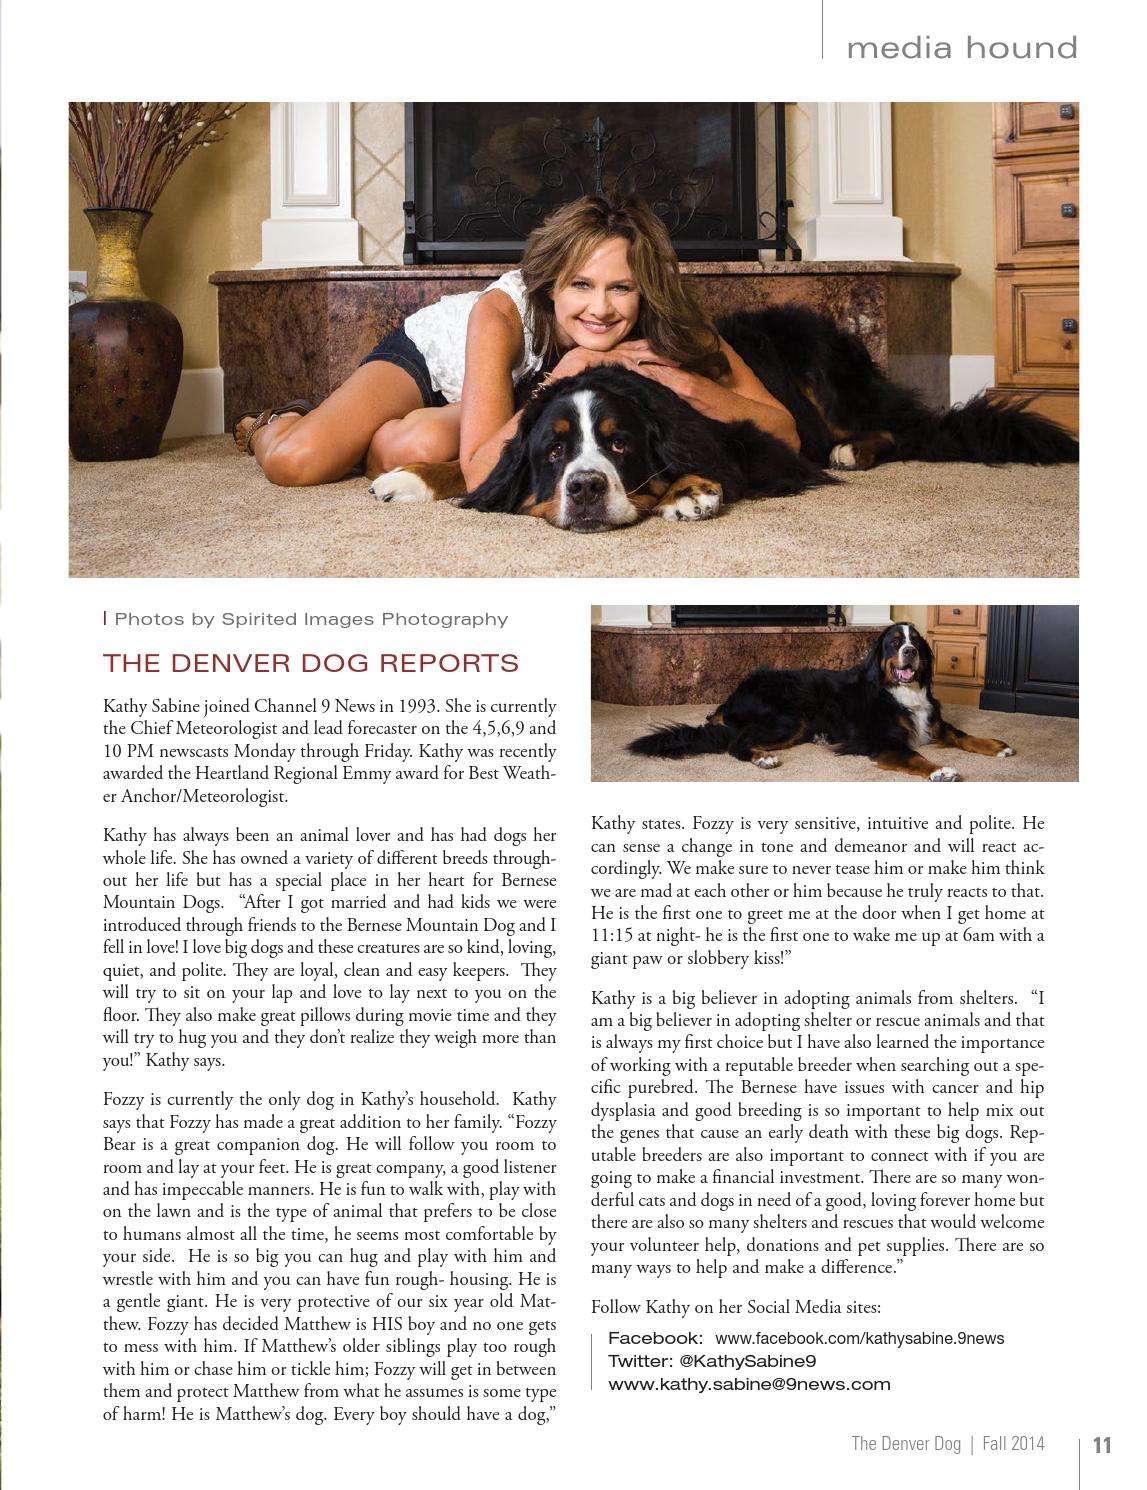 The Denver Dog Fall 2014 by Danielle Lewis - issuu